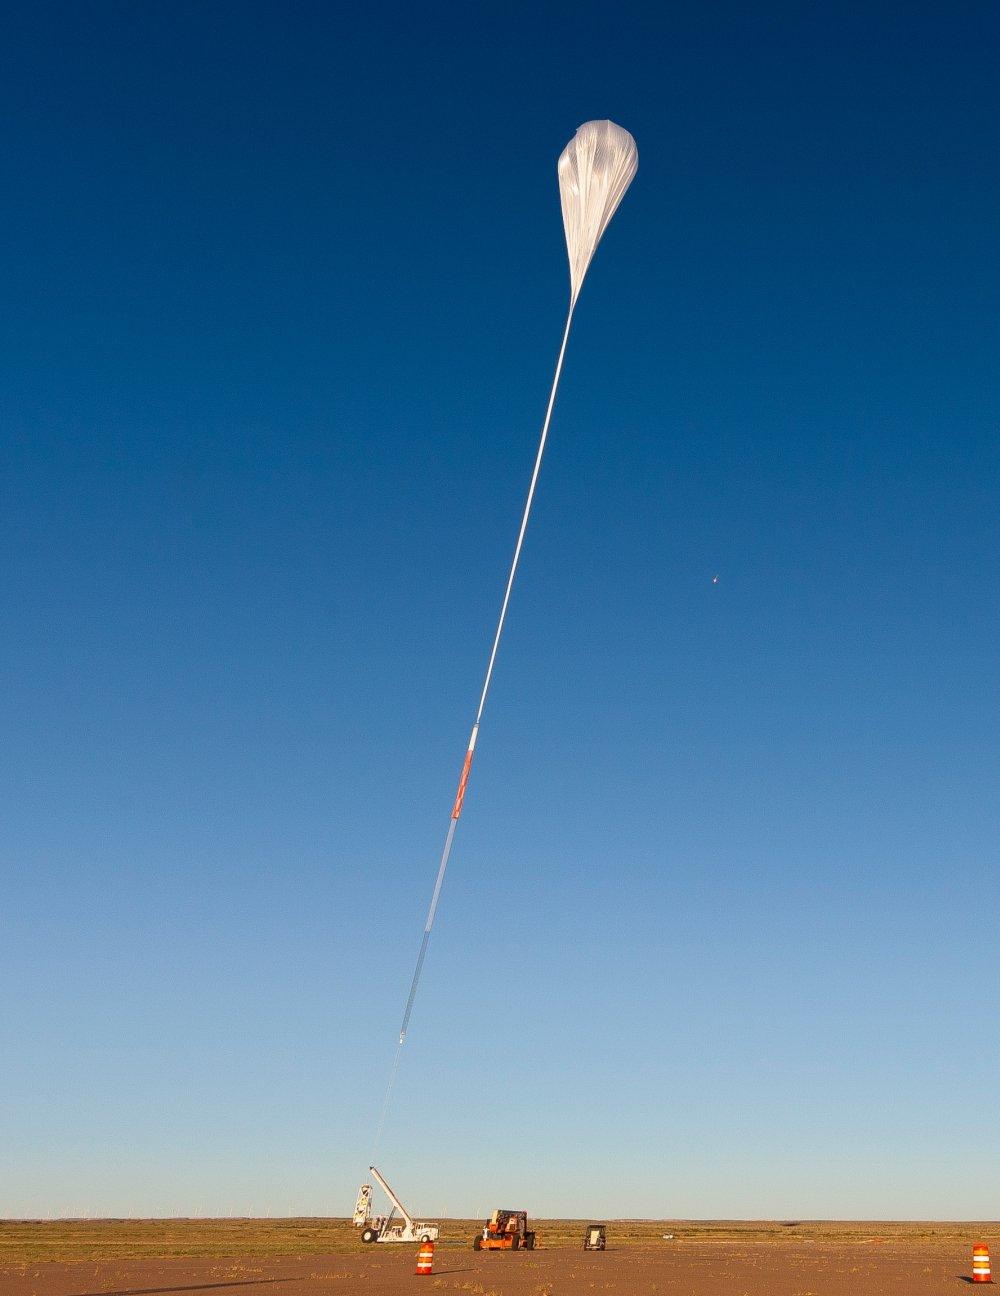 Balloon ascending to take the payload from the Big Bill launch vehicle (picture: NASA/JHUAPL)